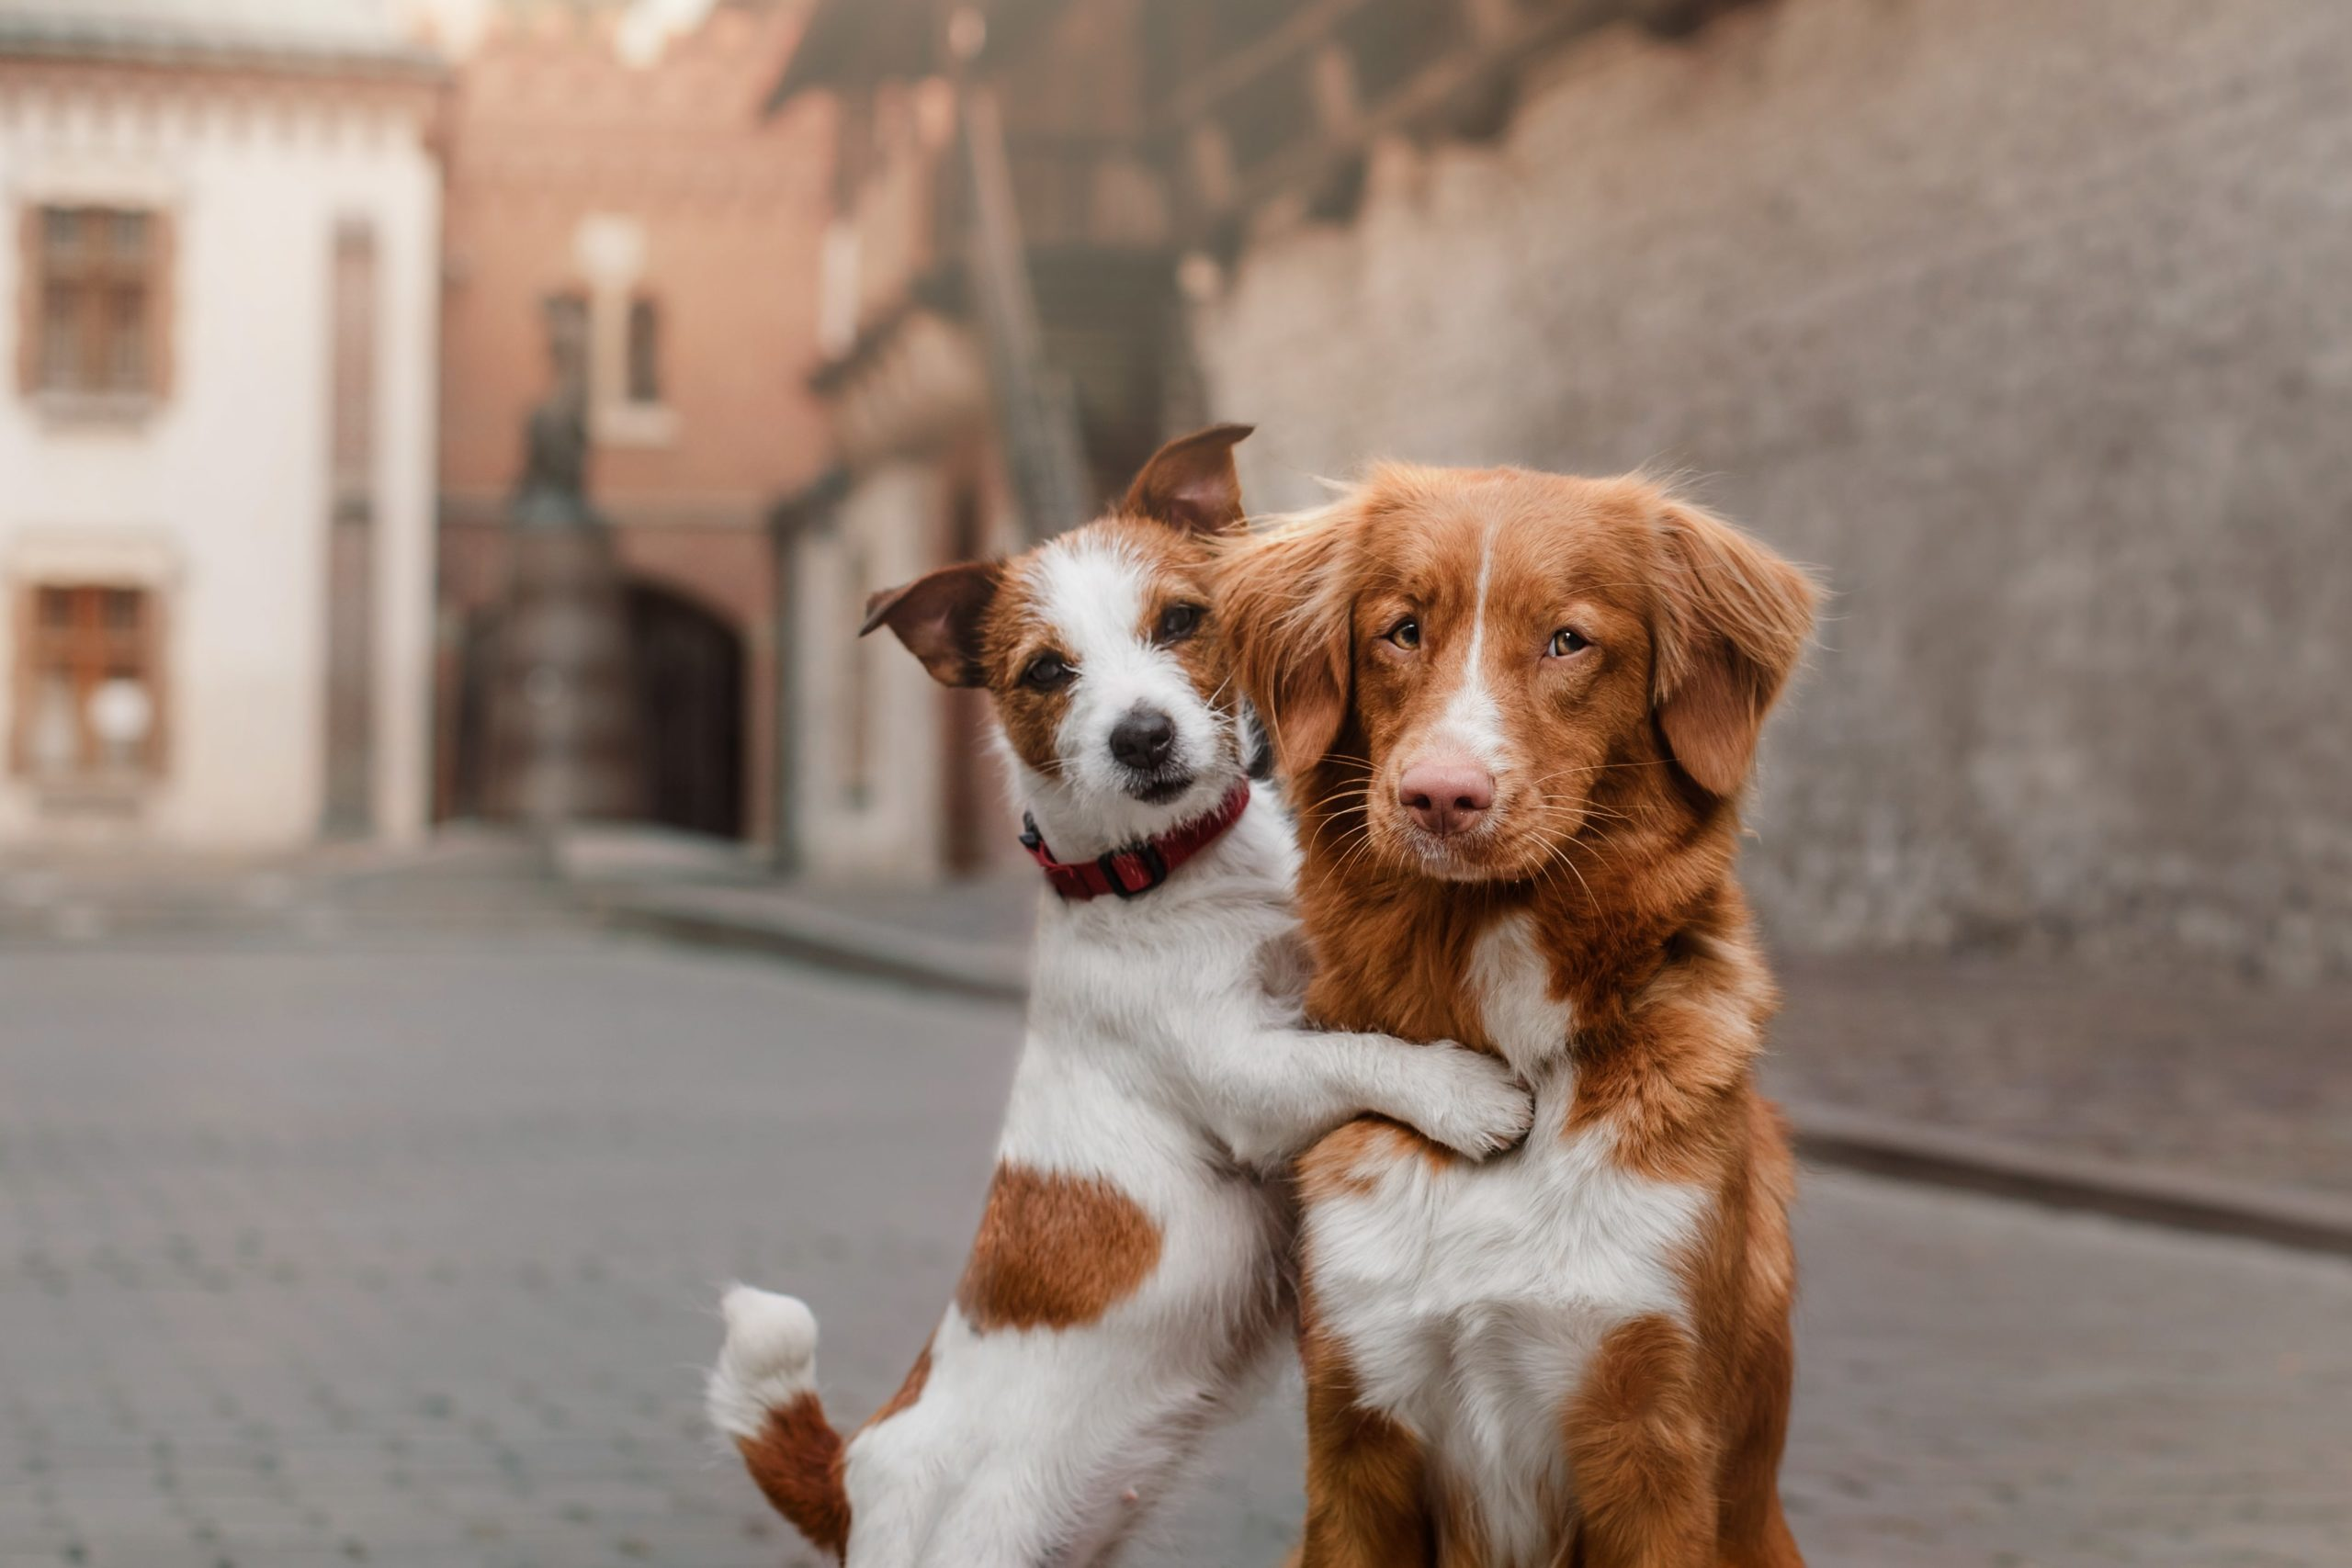 small dog hugs large dog in city street